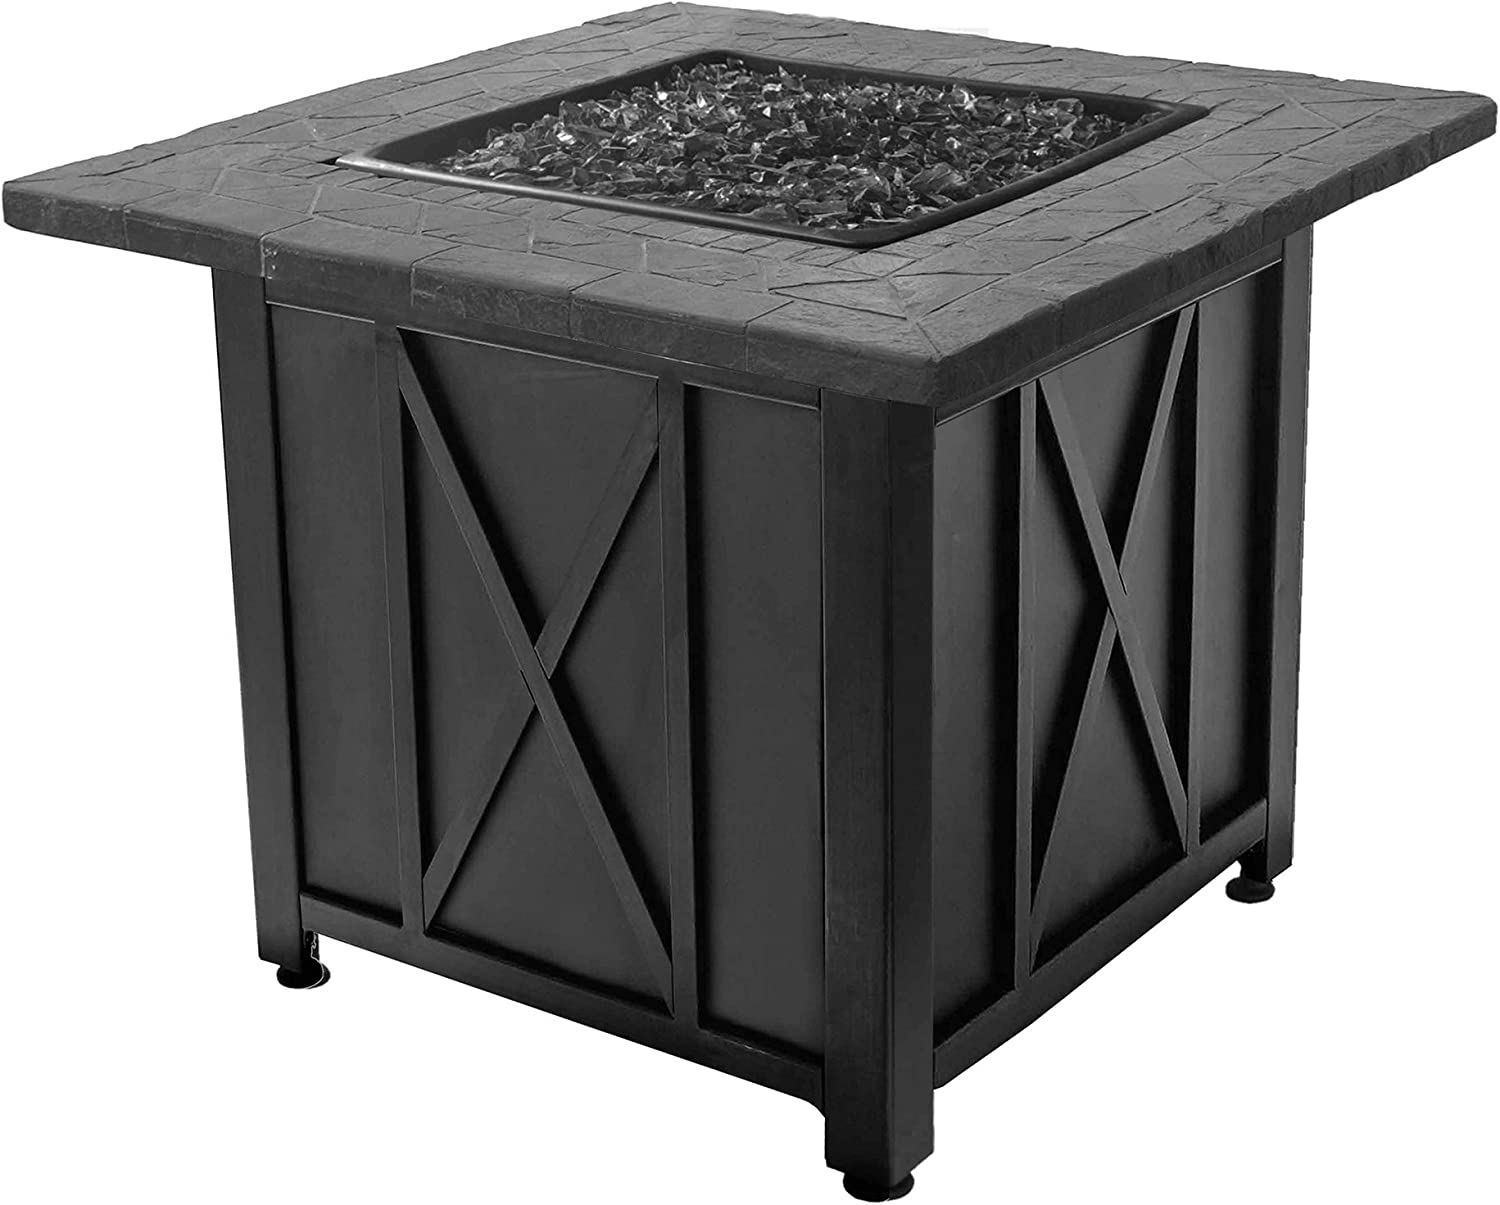 bluee Rhino Endless Summer Outdoor Propane Gas Black Lava Rock Patio Fire Pit